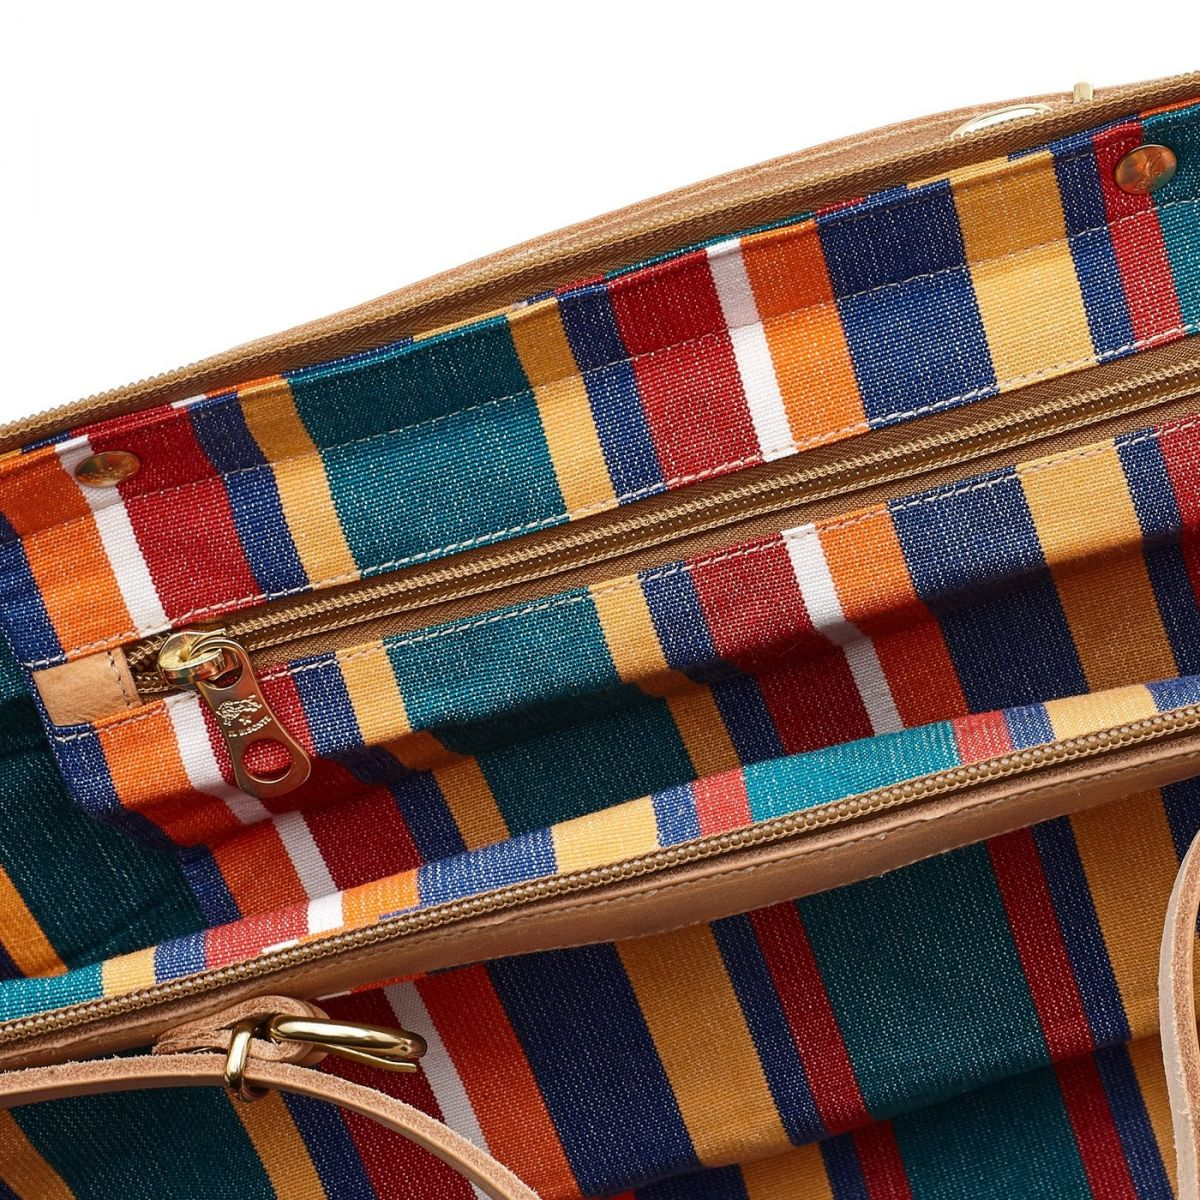 Caramella  - Women's Shoulder Bag  in Striped Cotton Canvas BSH112 color Multicolor | Details